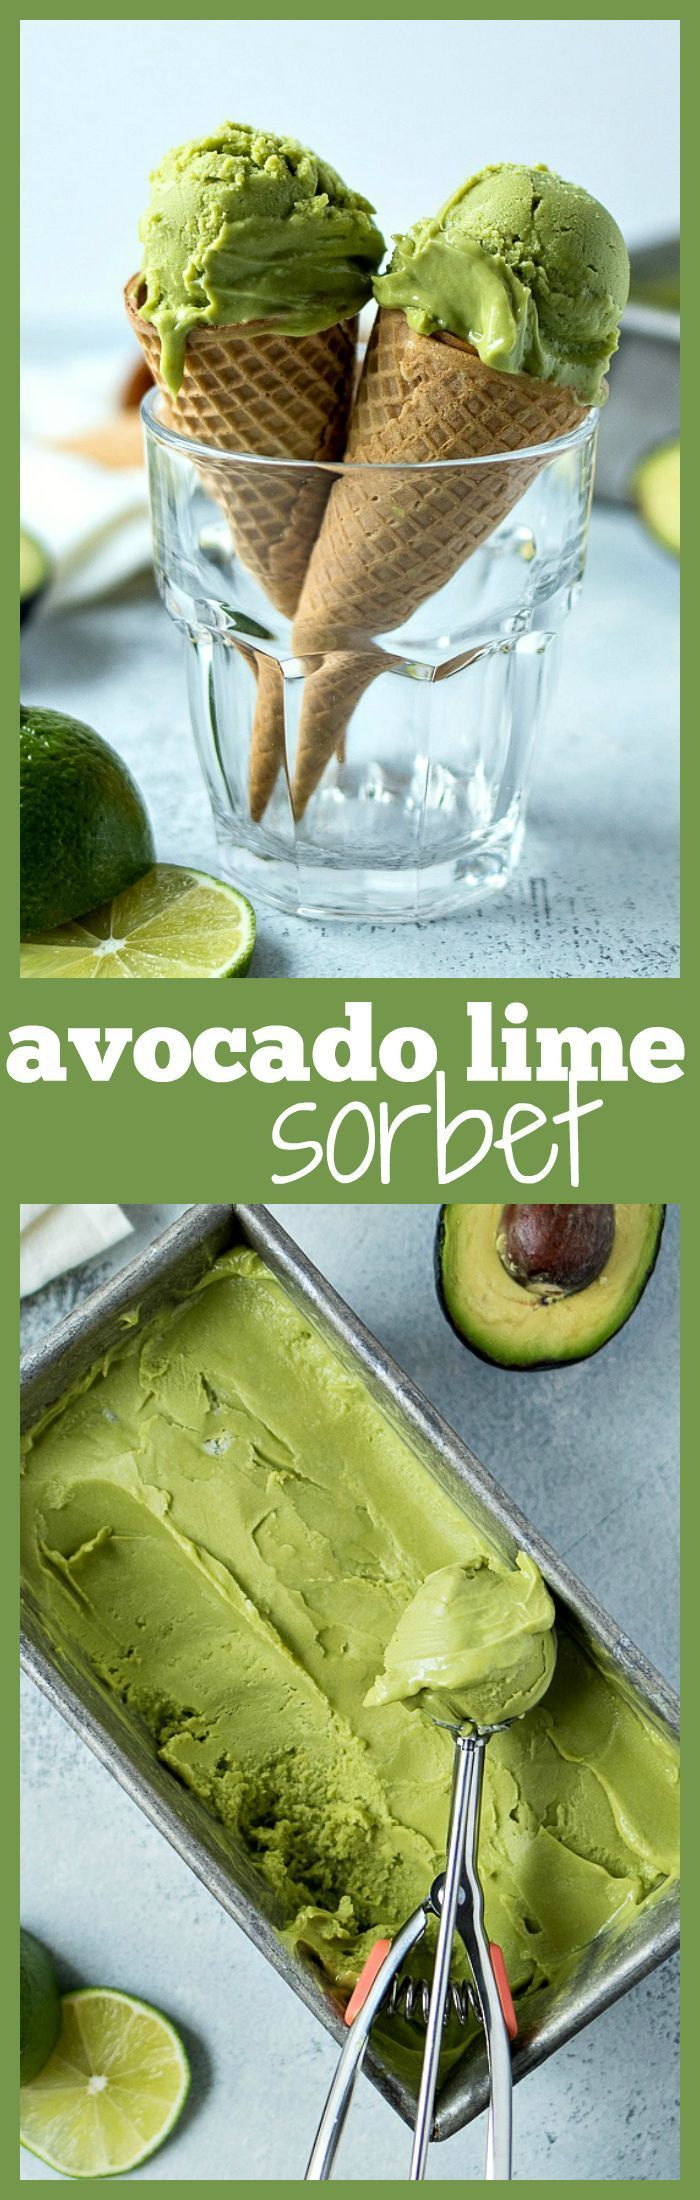 Avocado Lime Sorbet ~ Made with only three ingredients, this avocado lime sorbet is shockingly refreshing and unbelievably creamy. It's going to be your new favorite summer treat!